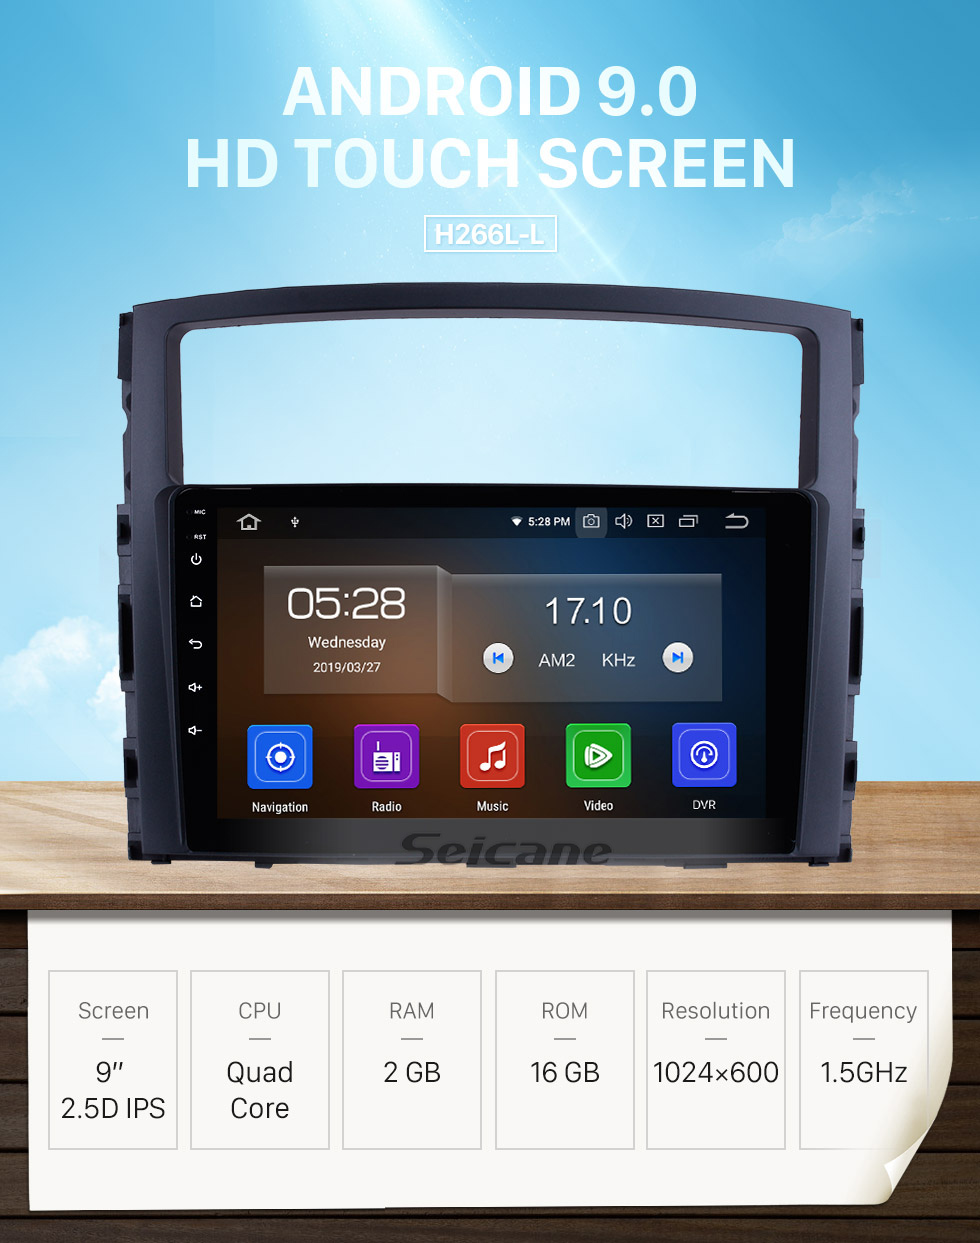 Seicane 9 Inch 2006-2017 MITSUBISHI PAJERO V97/V93 HD Touchscreen GPS Navigation System Android 9.0 Radio Support Bluetooth OBDII Rear Camera AUX Steering Wheel Control USB 1080P  Mirror Link 3G/4G WiFi TPMS DVR USB